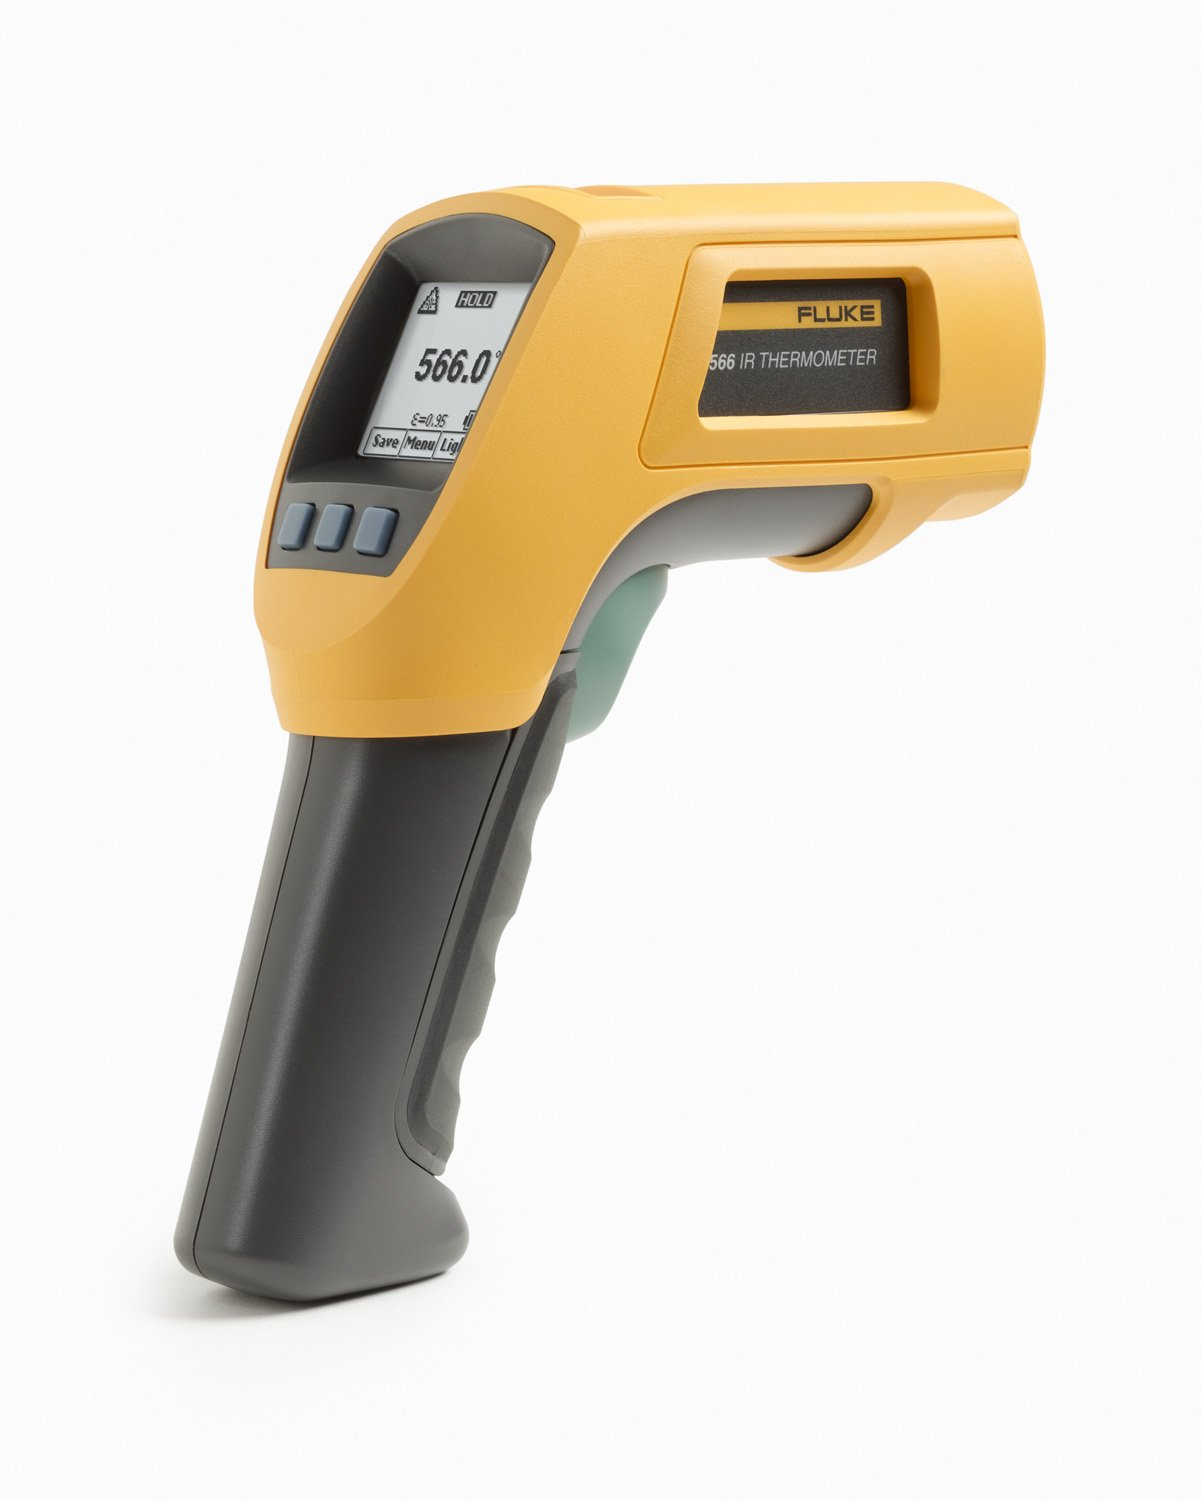 2AA//LR6 Battery,-40 to Plus 1202 Degree F Range Fluke 566 Infrared Thermometer